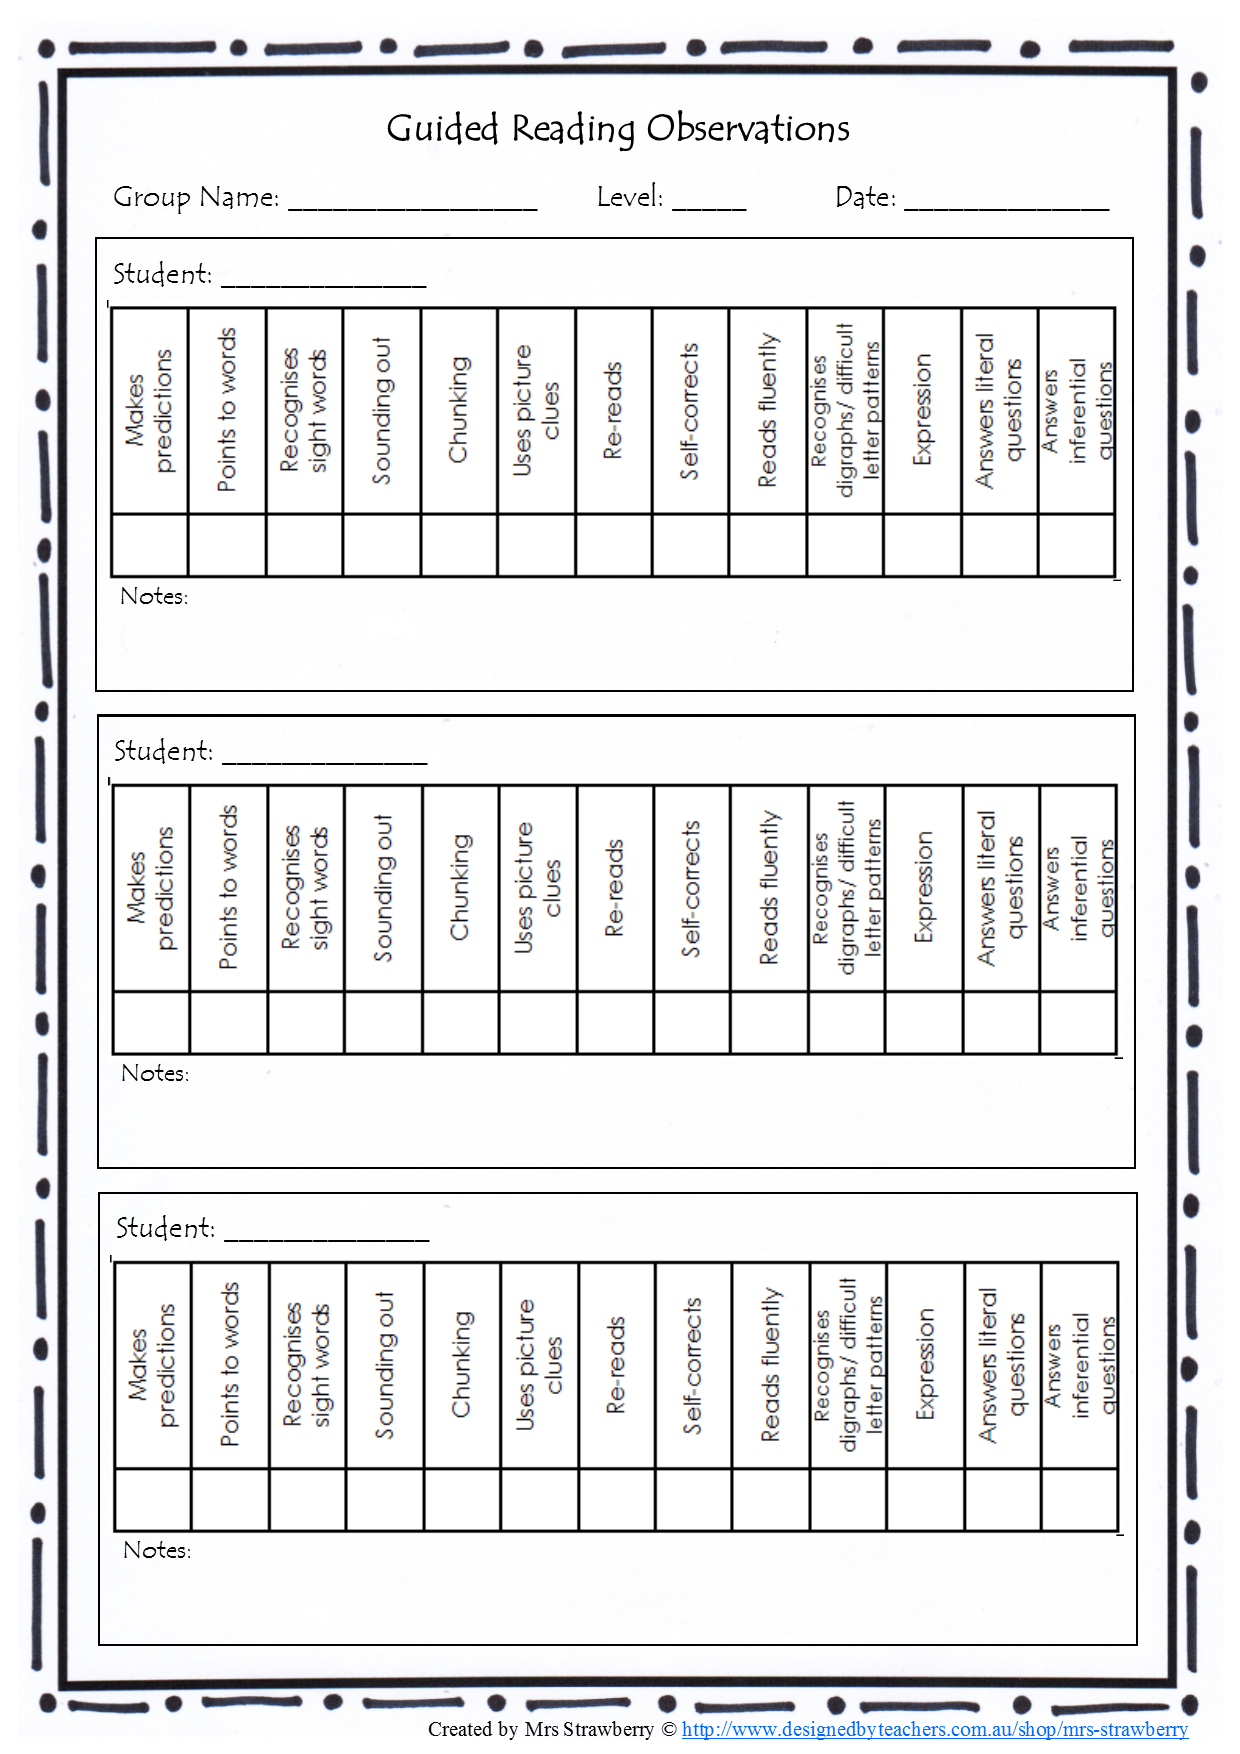 Guided Reading Observations Checklist Copy This Page Back And Front To Have An Easy To Use